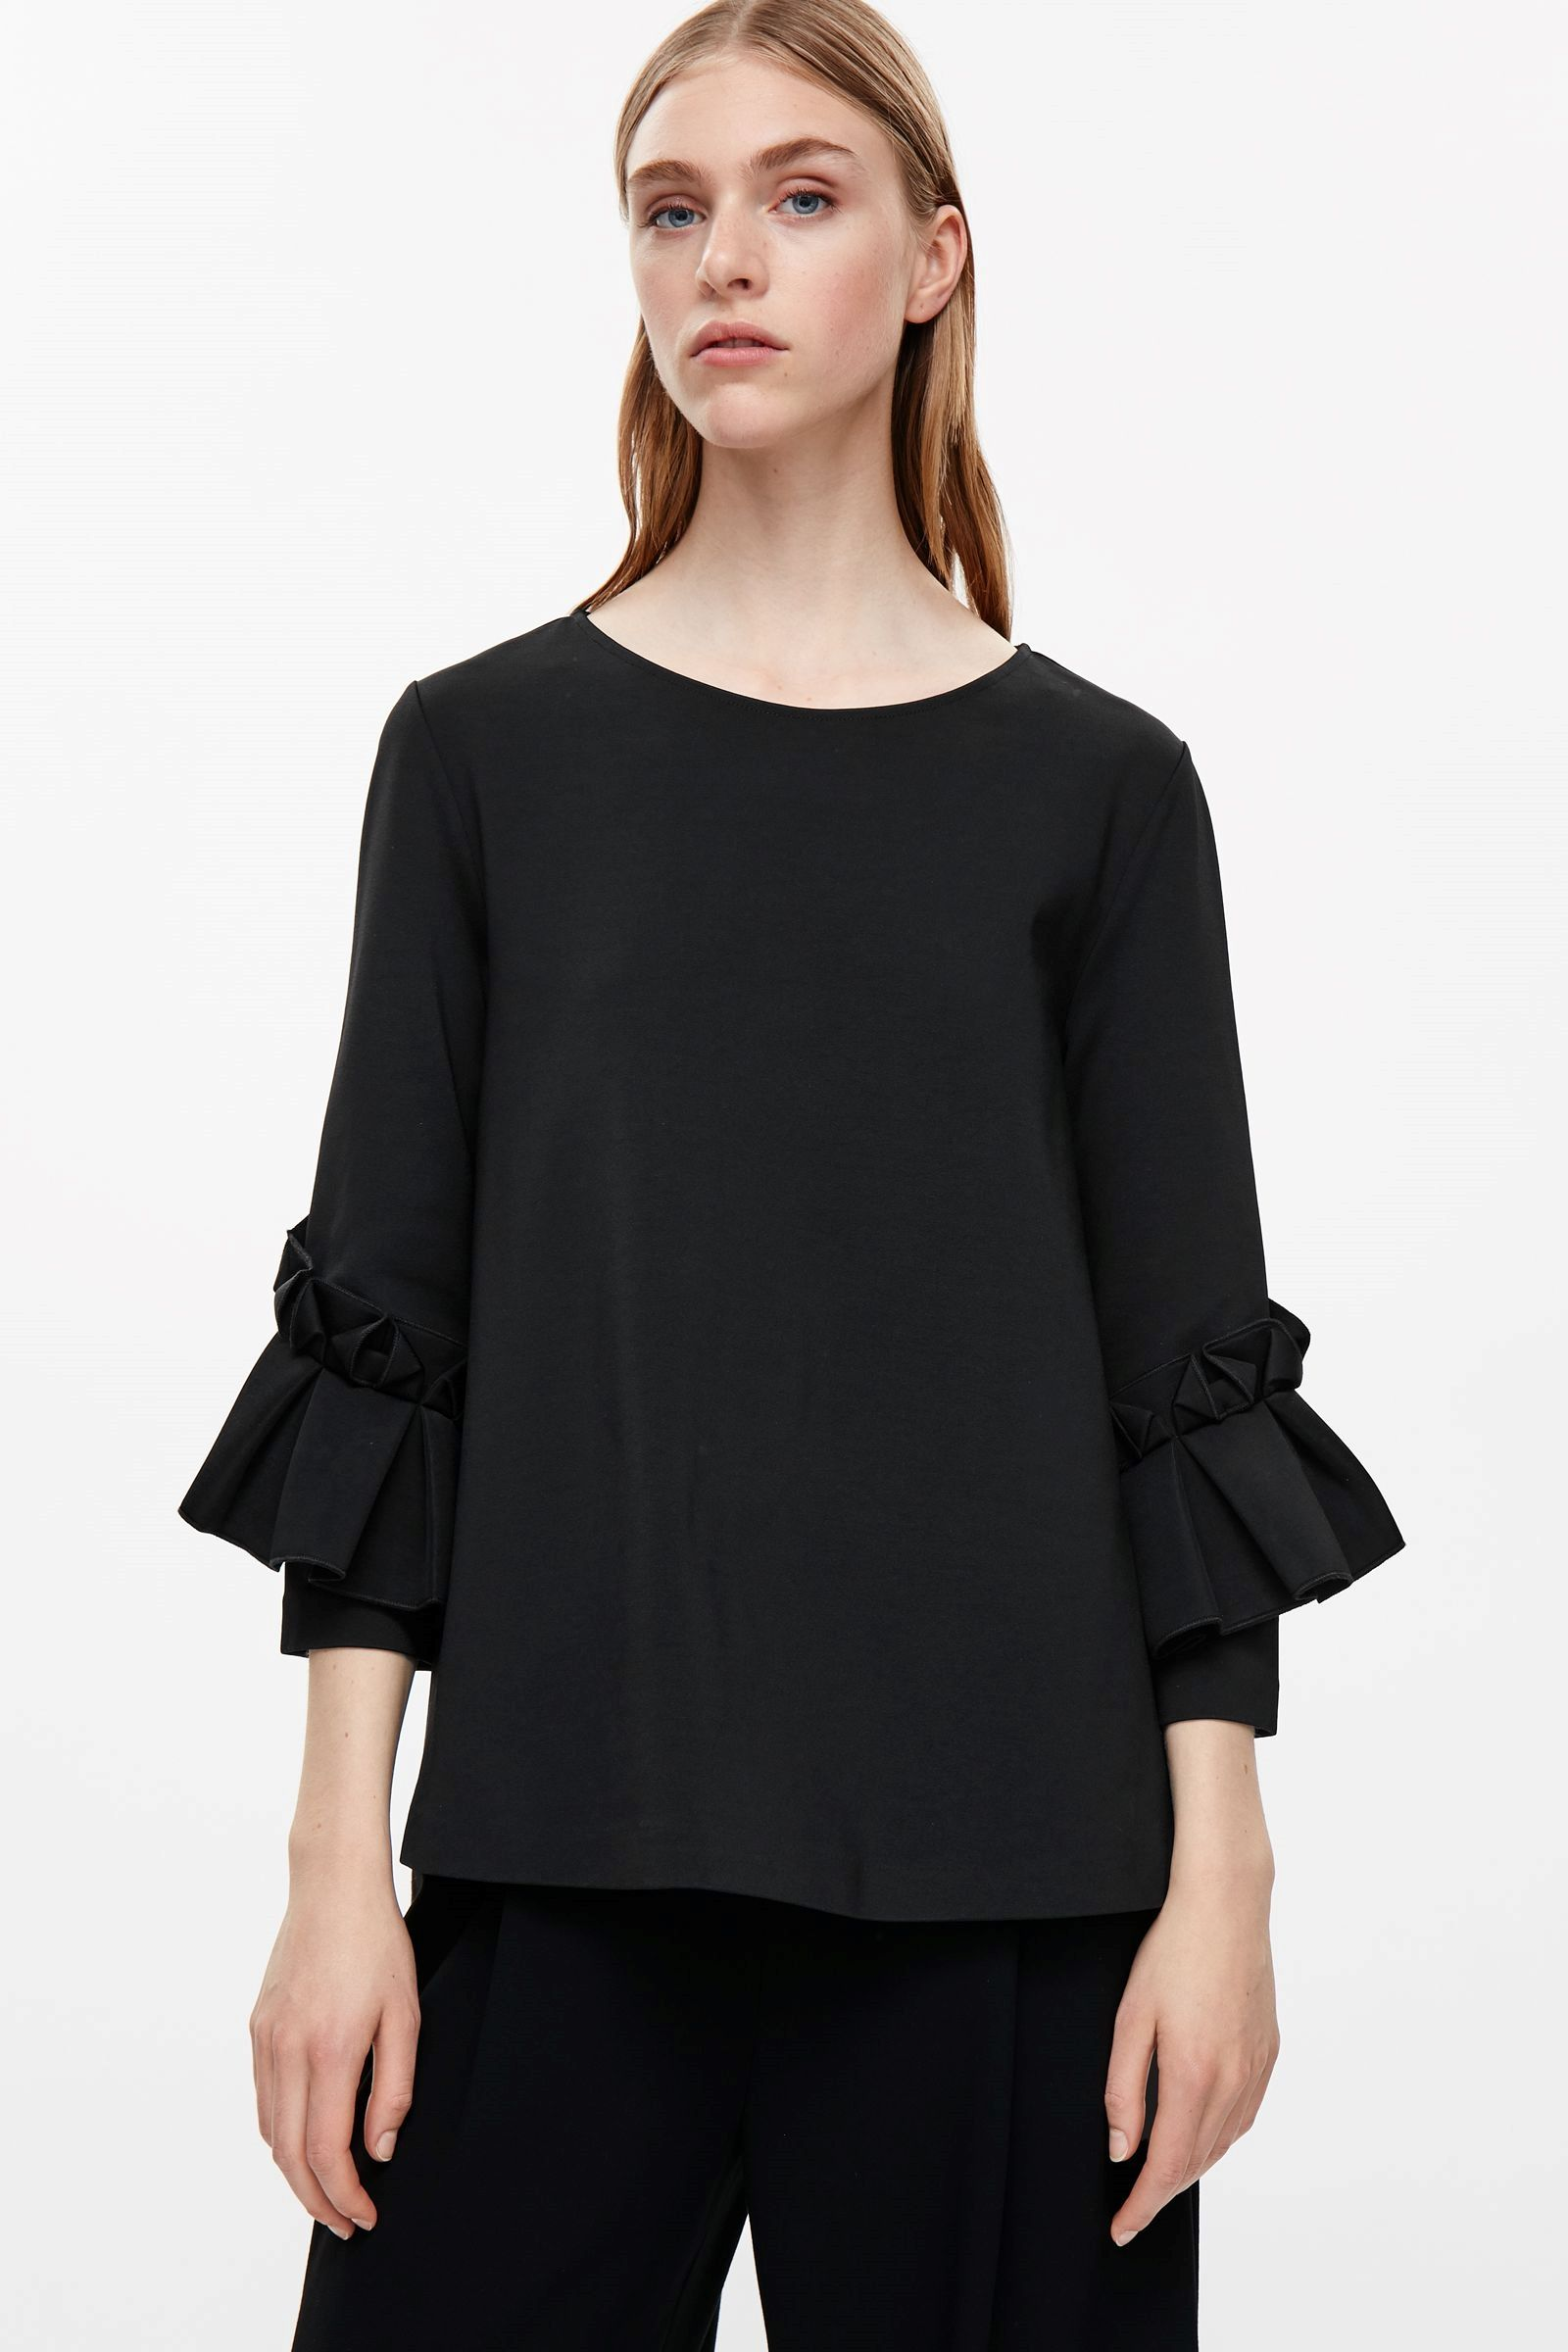 COS image 2 of Top with frill detailed sleeves in Black